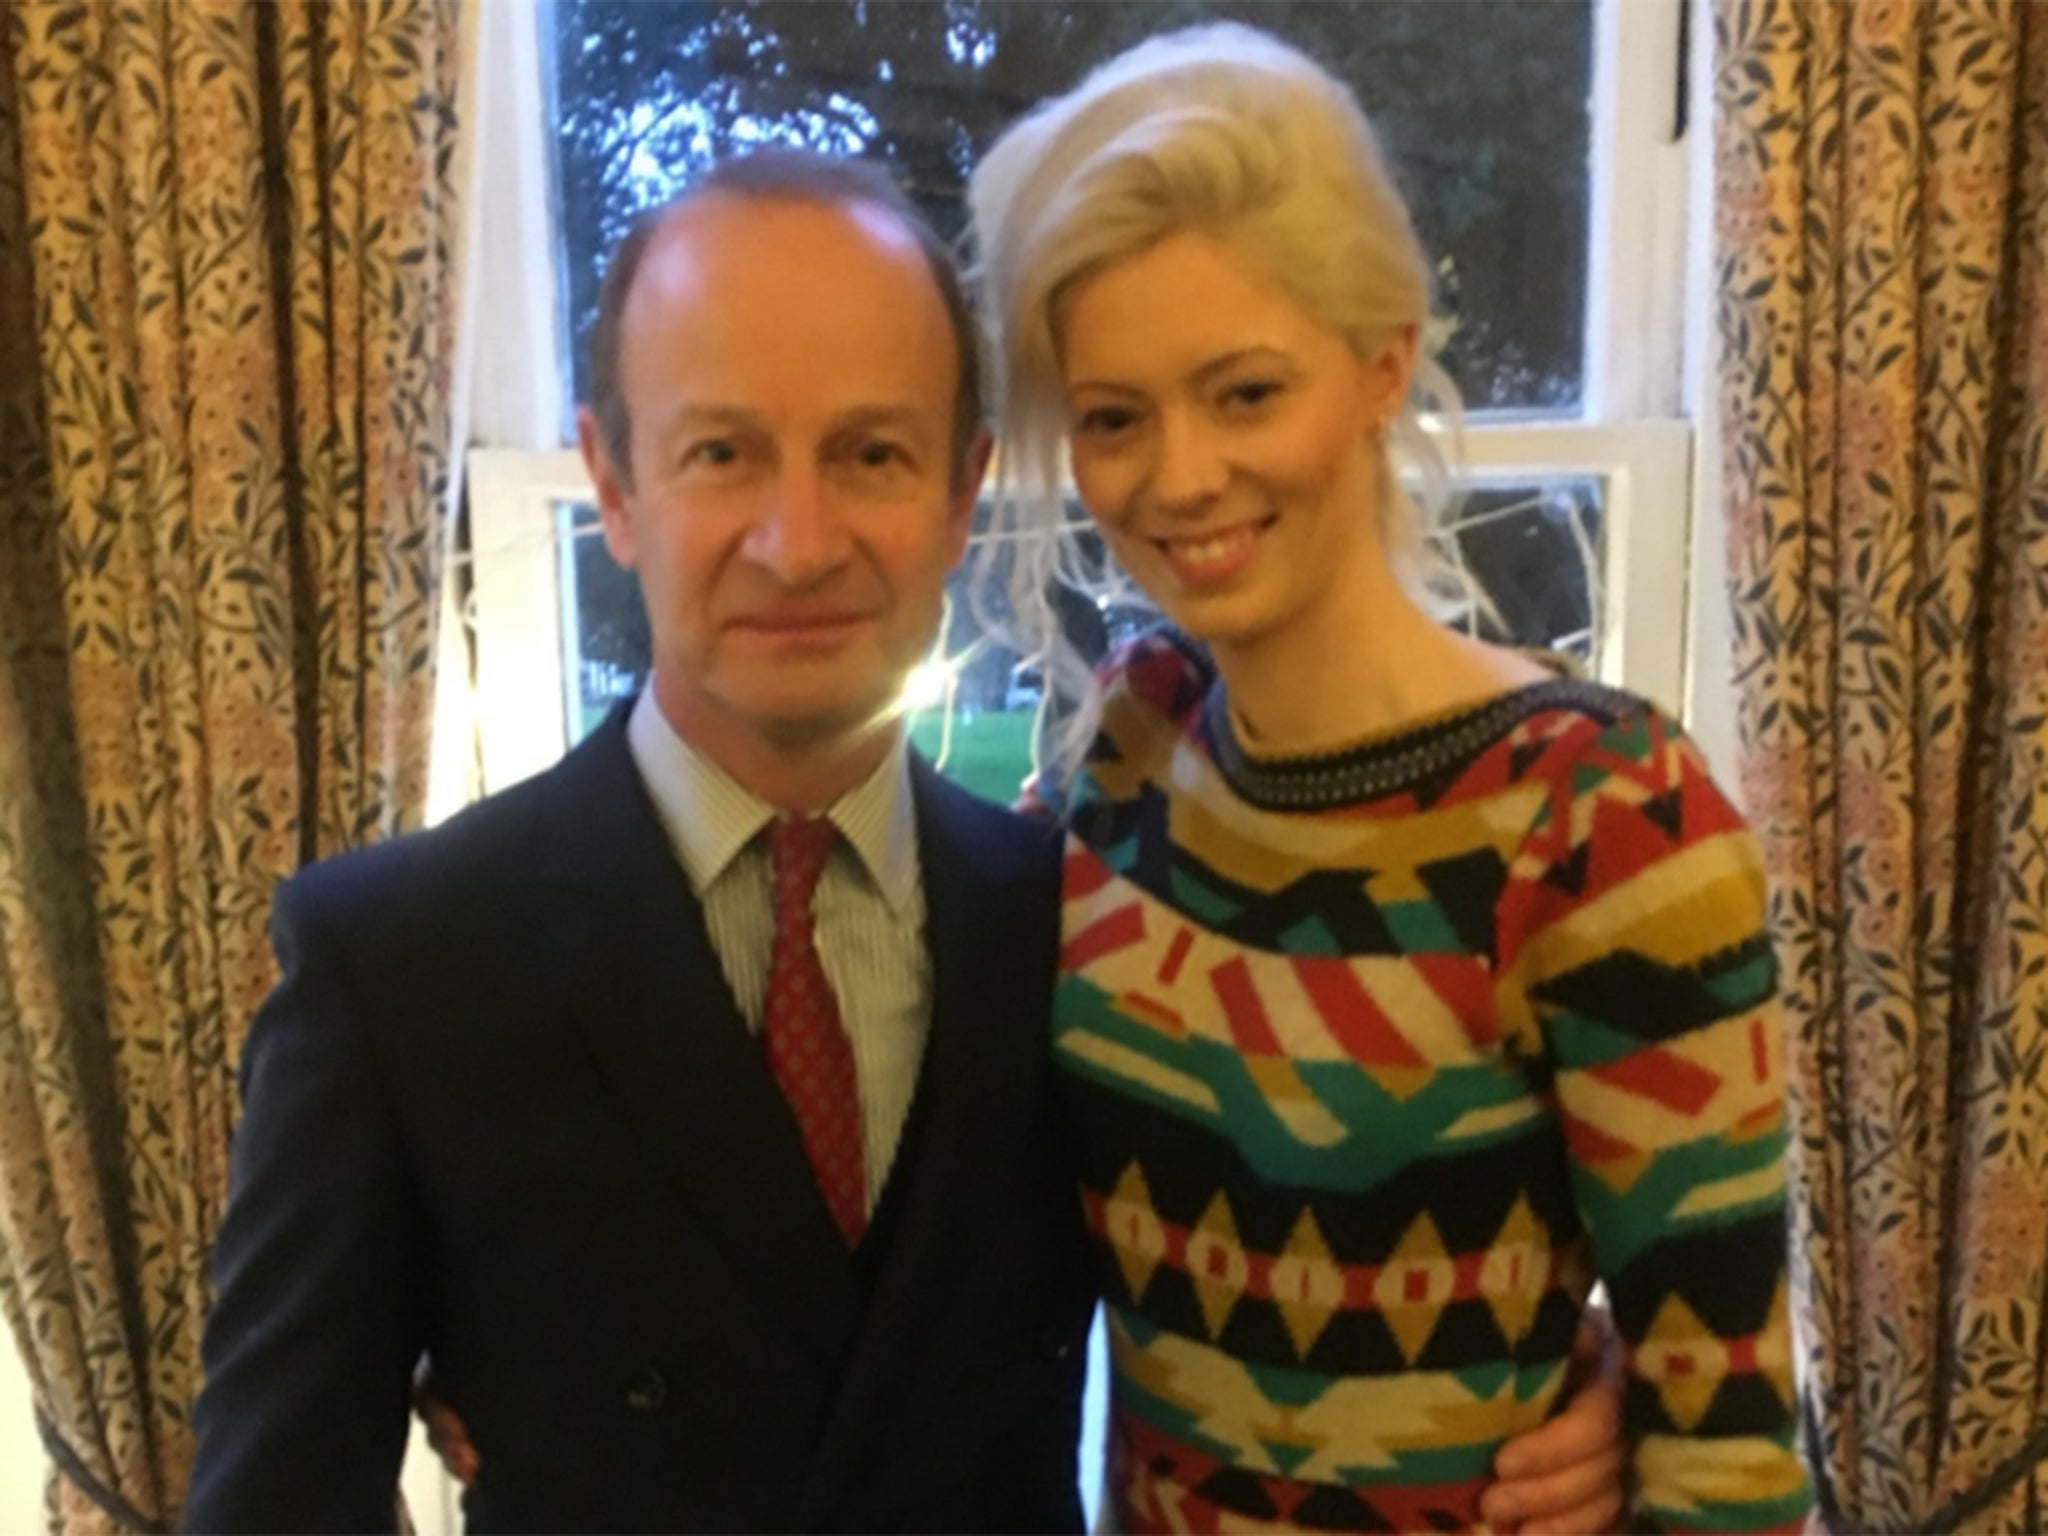 Henry Bolton: Ukip leader admits he still has 'strong affections' for ex-girlfriend who sent racist messages about Meghan Markle